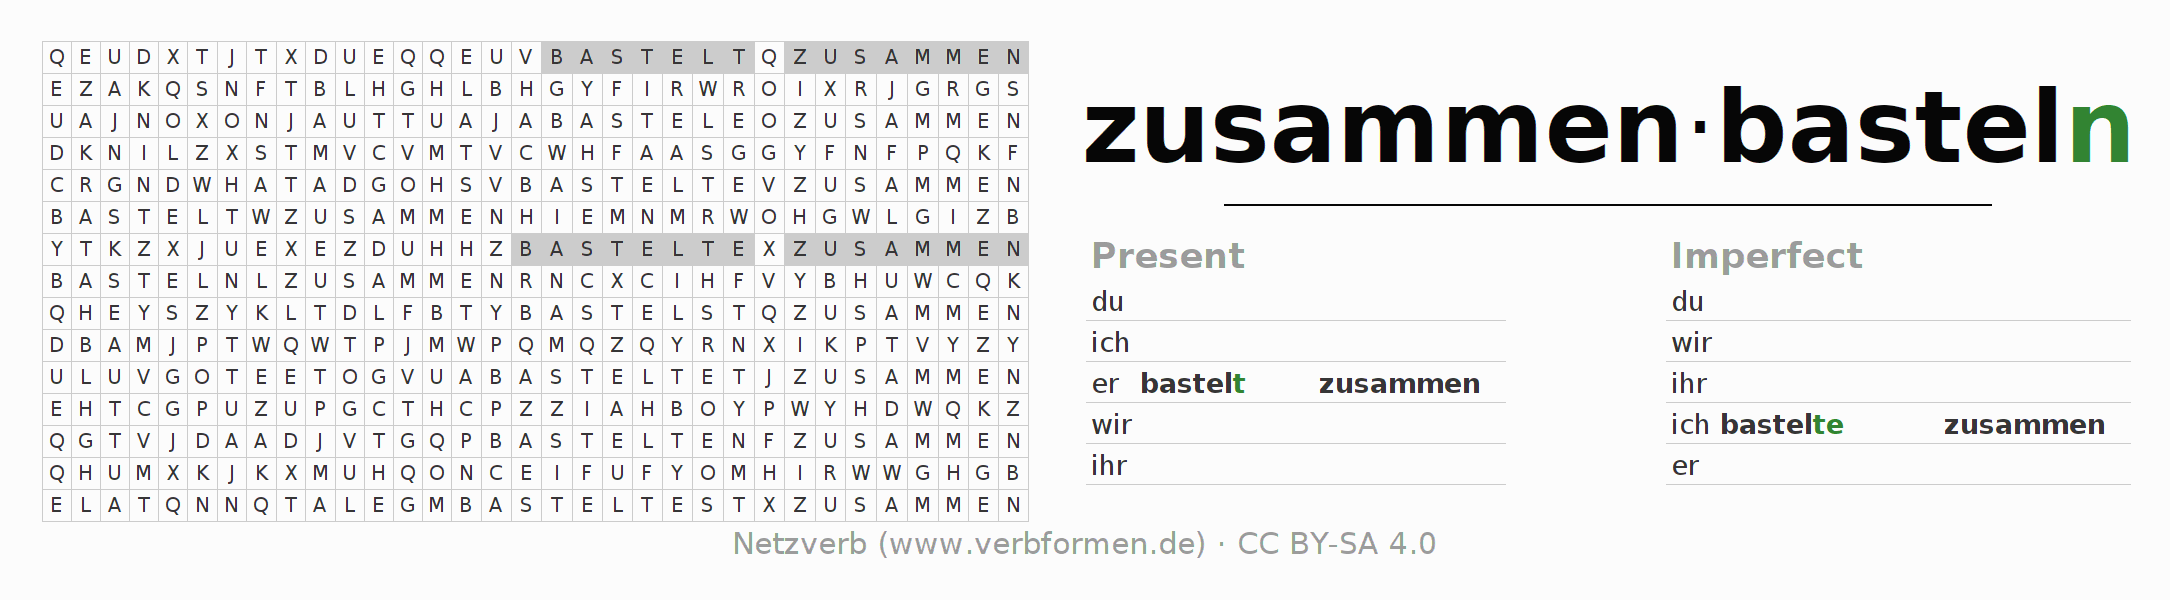 Word search puzzle for the conjugation of the verb zusammenbasteln